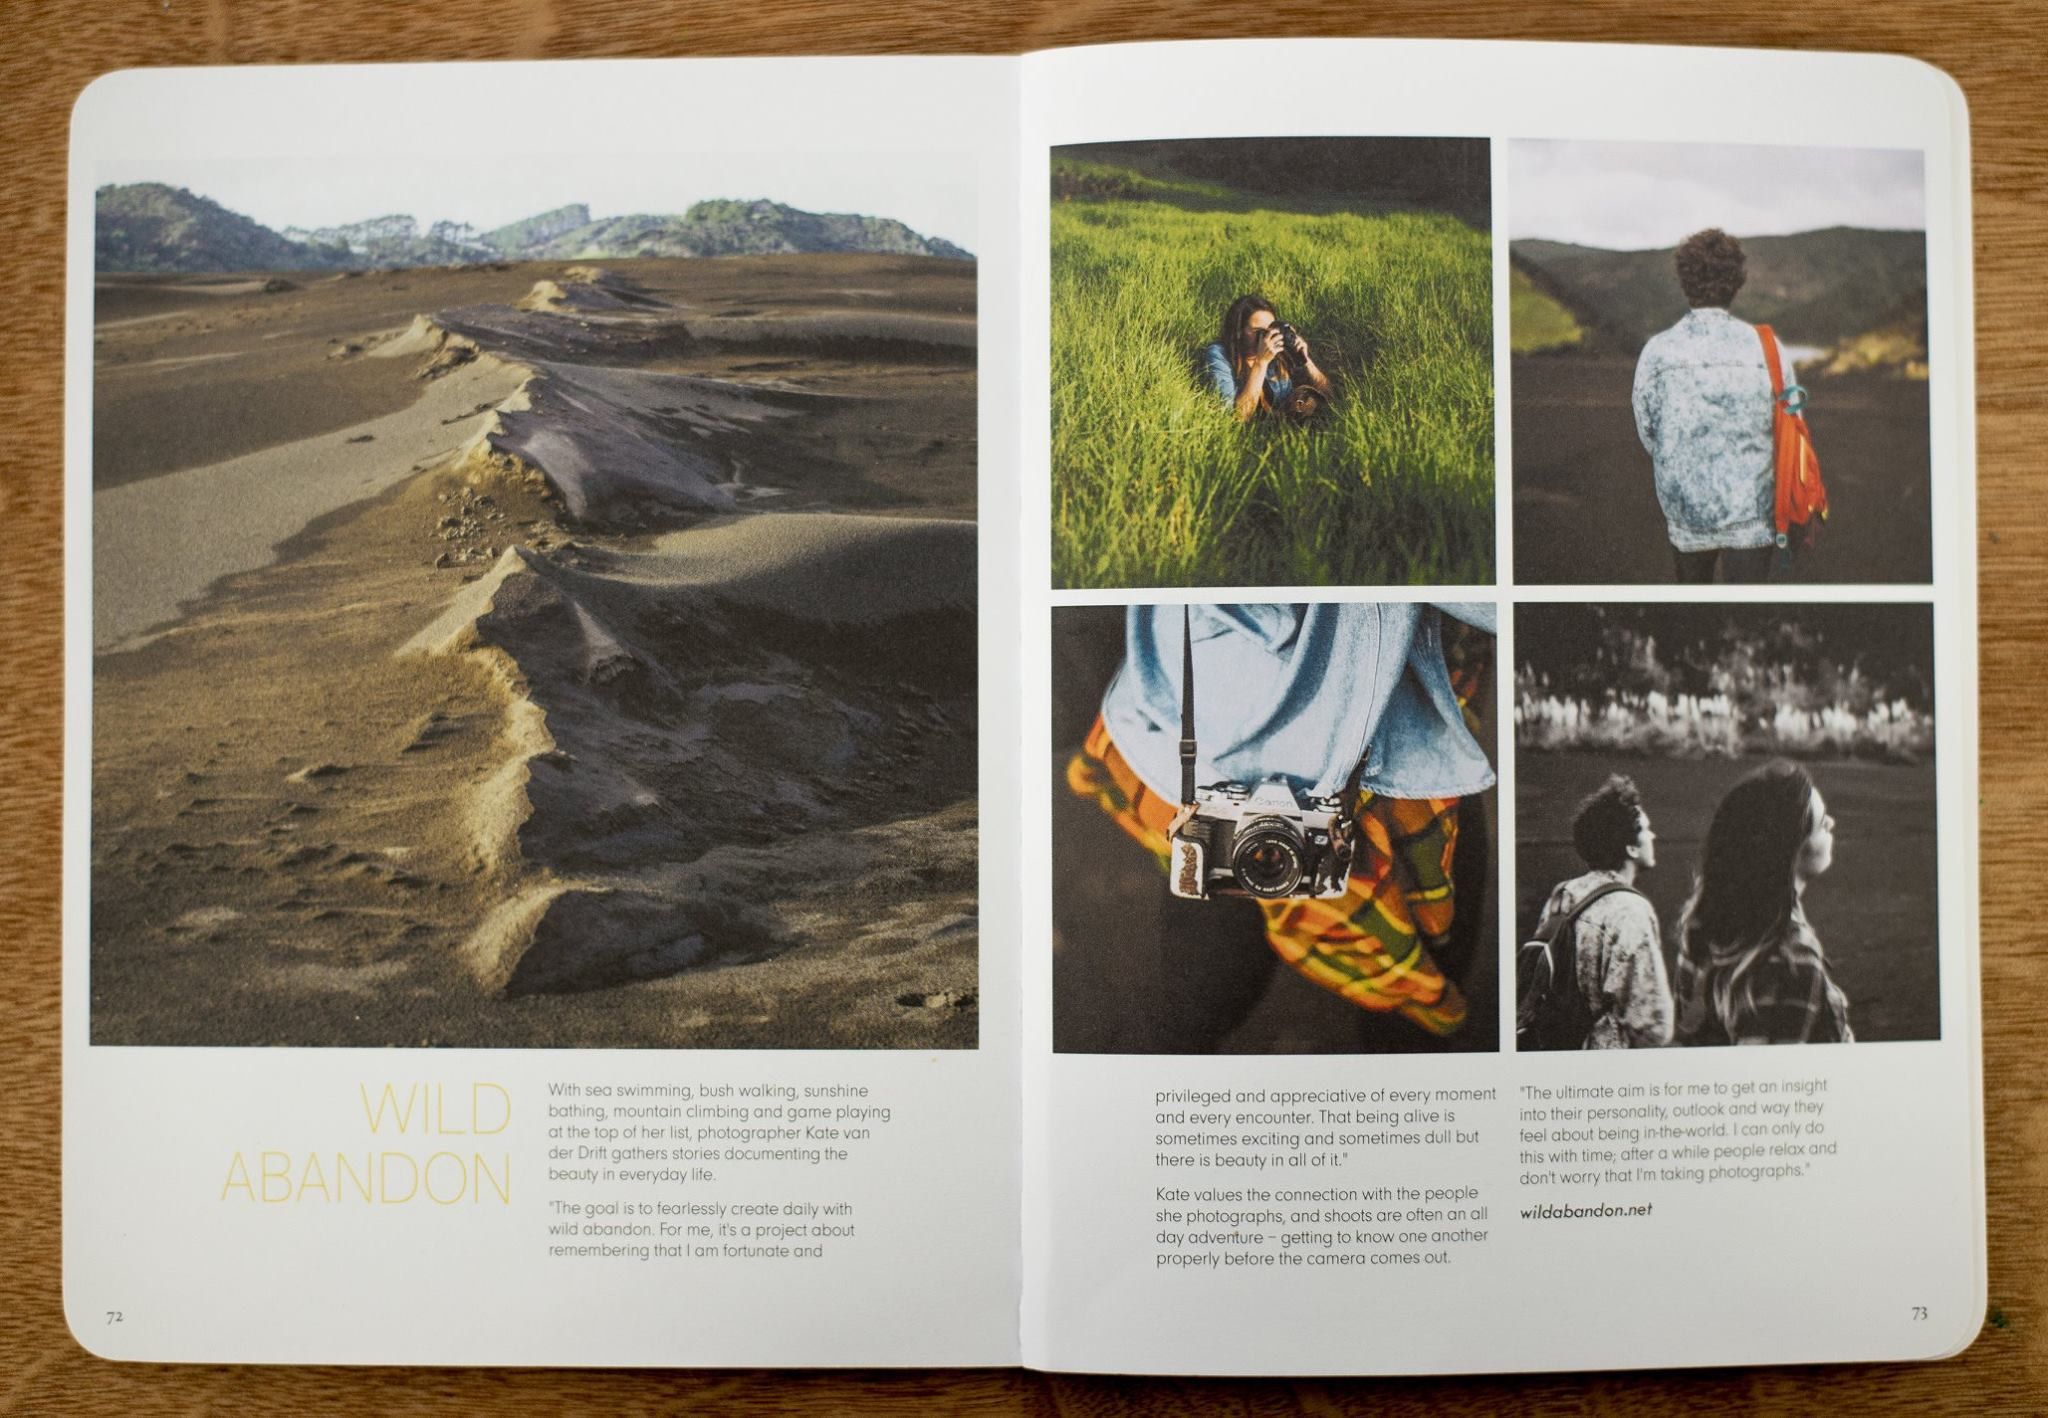 Wild Abandon storytelling photo journal featured in Extra Curricular Magazine.